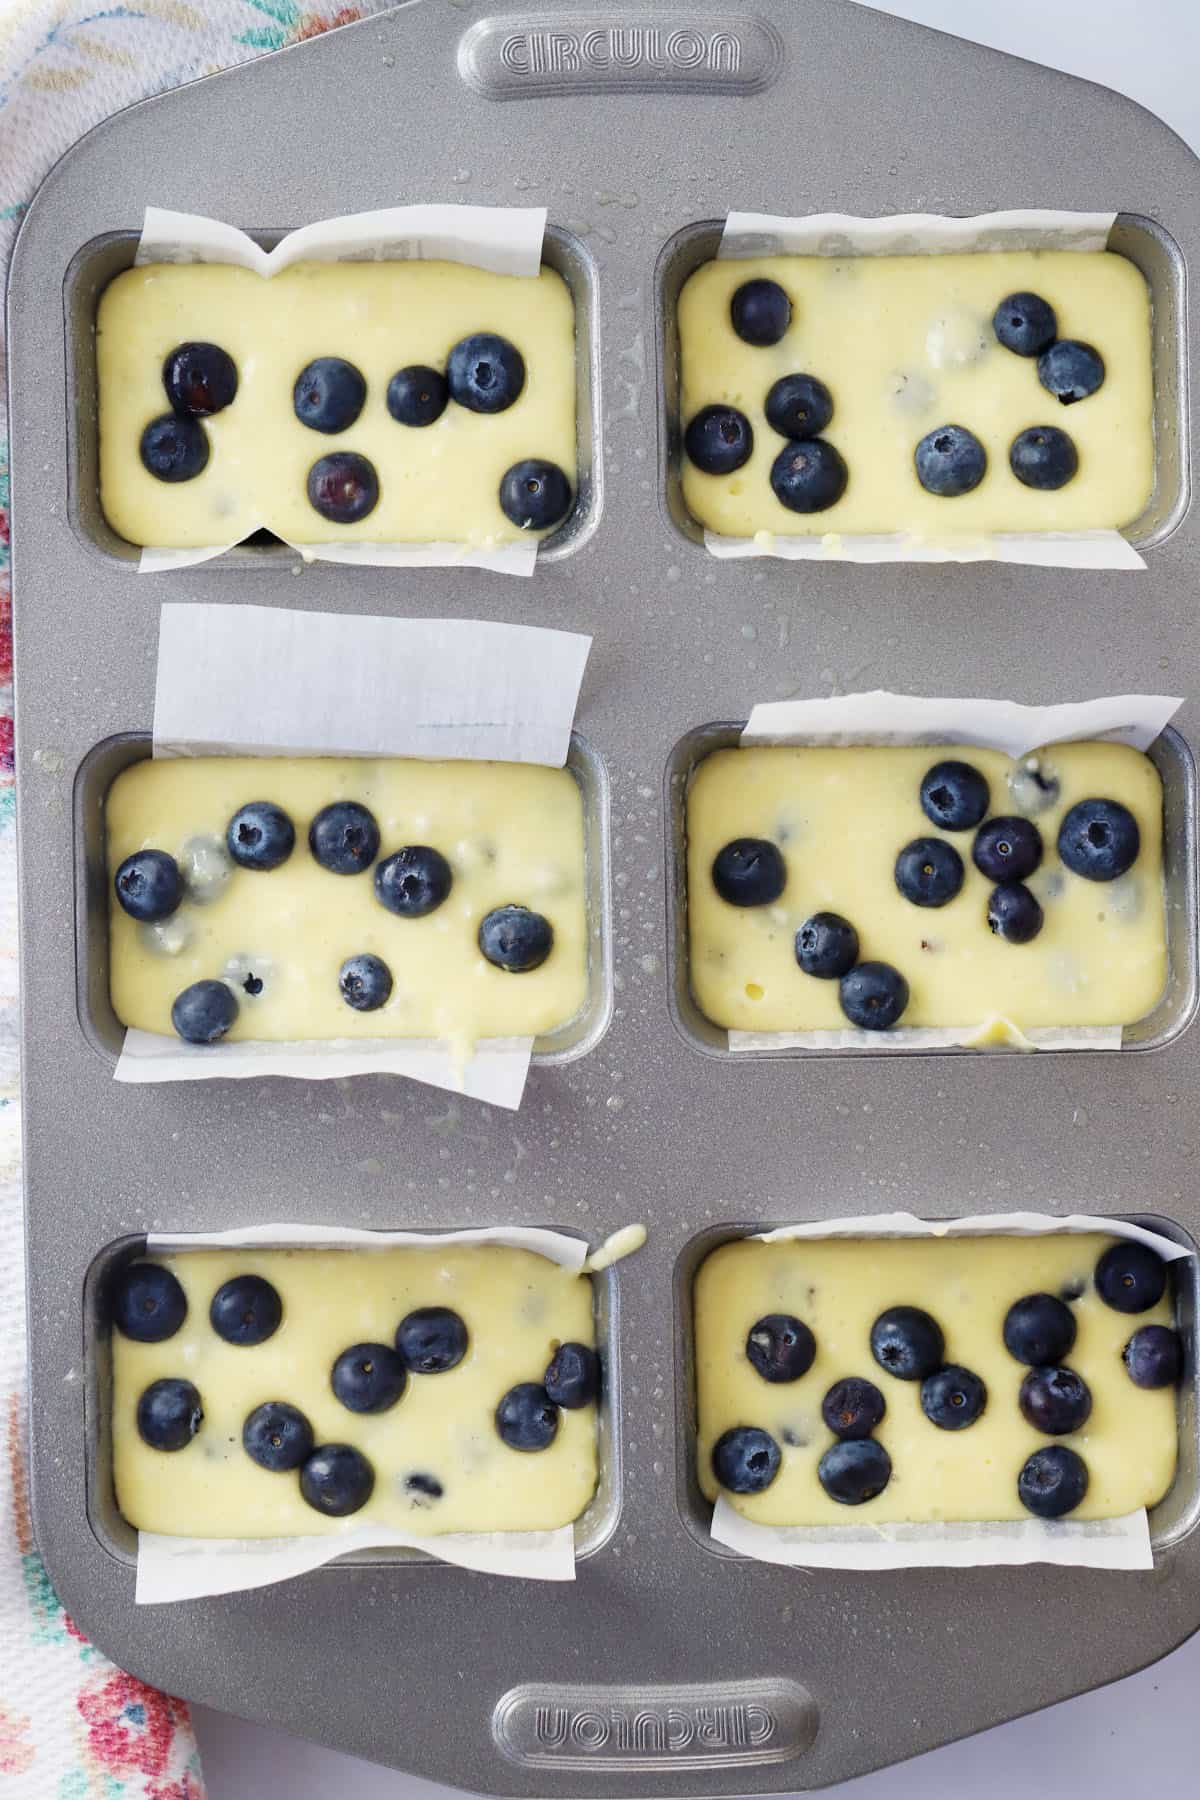 Circulon mini loaf pan filled with blueberry bread batter.